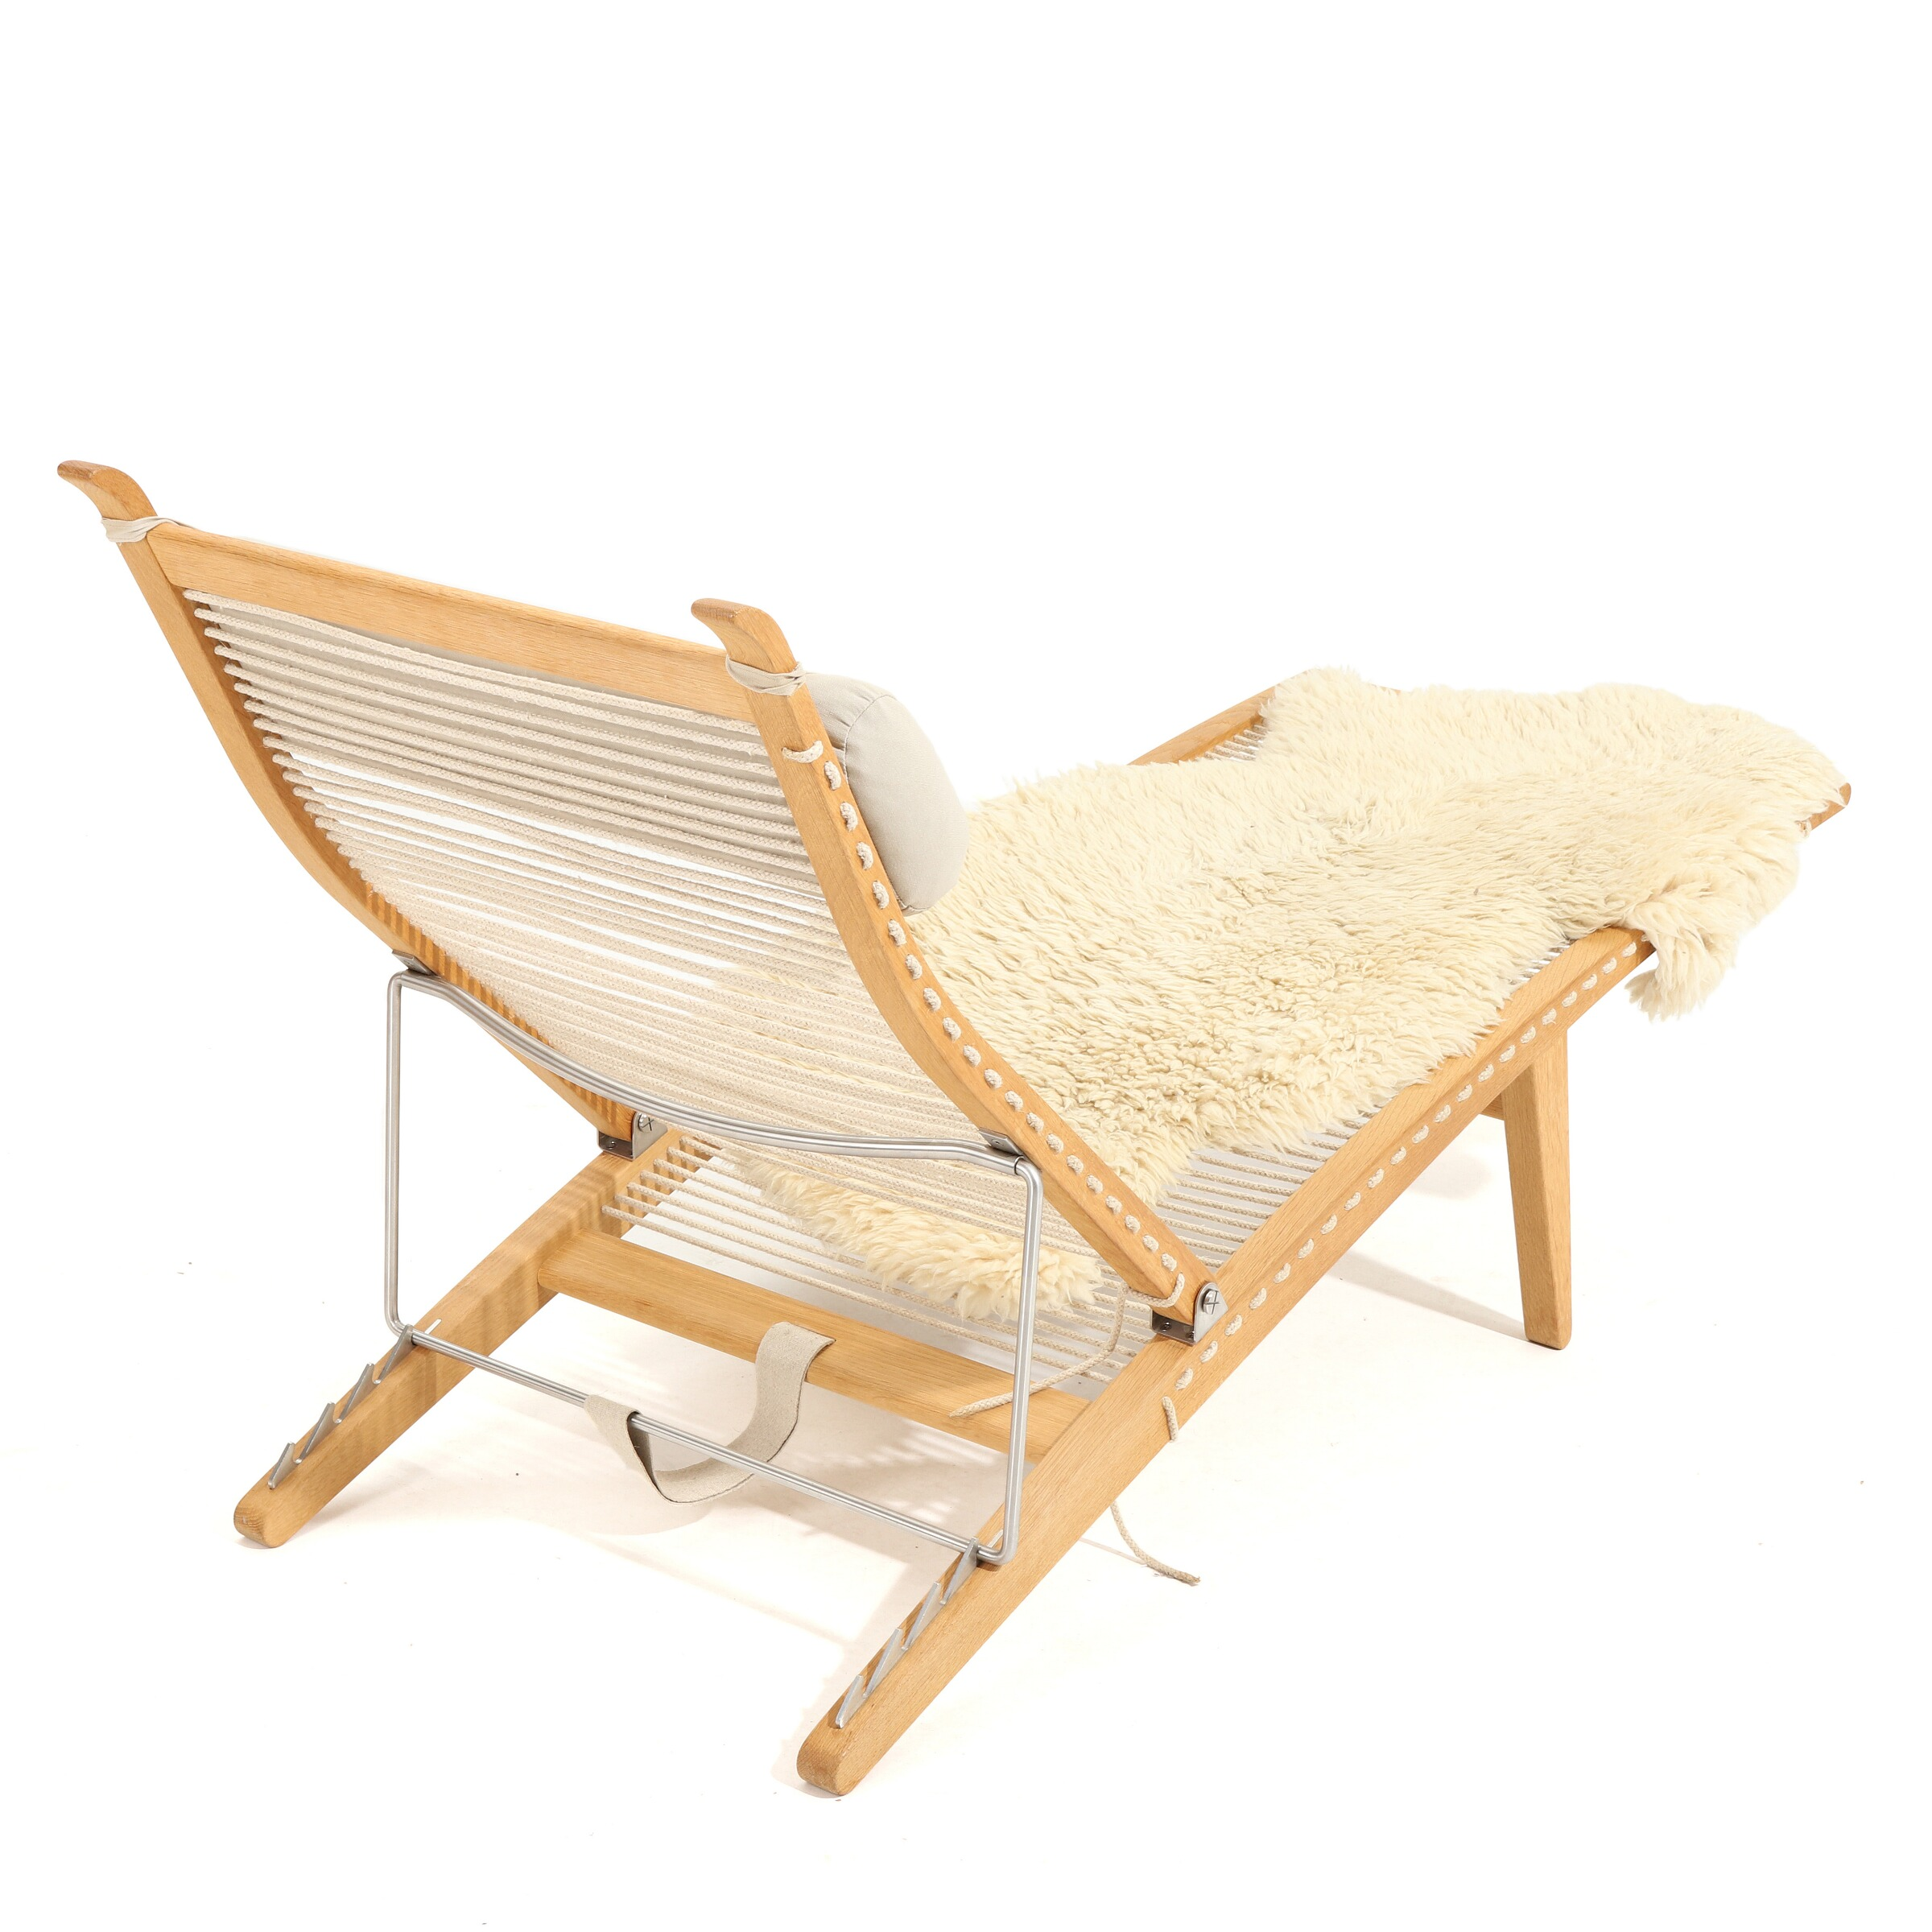 _PP_524_An_oak_deck_chair_seat_and_back_w-3